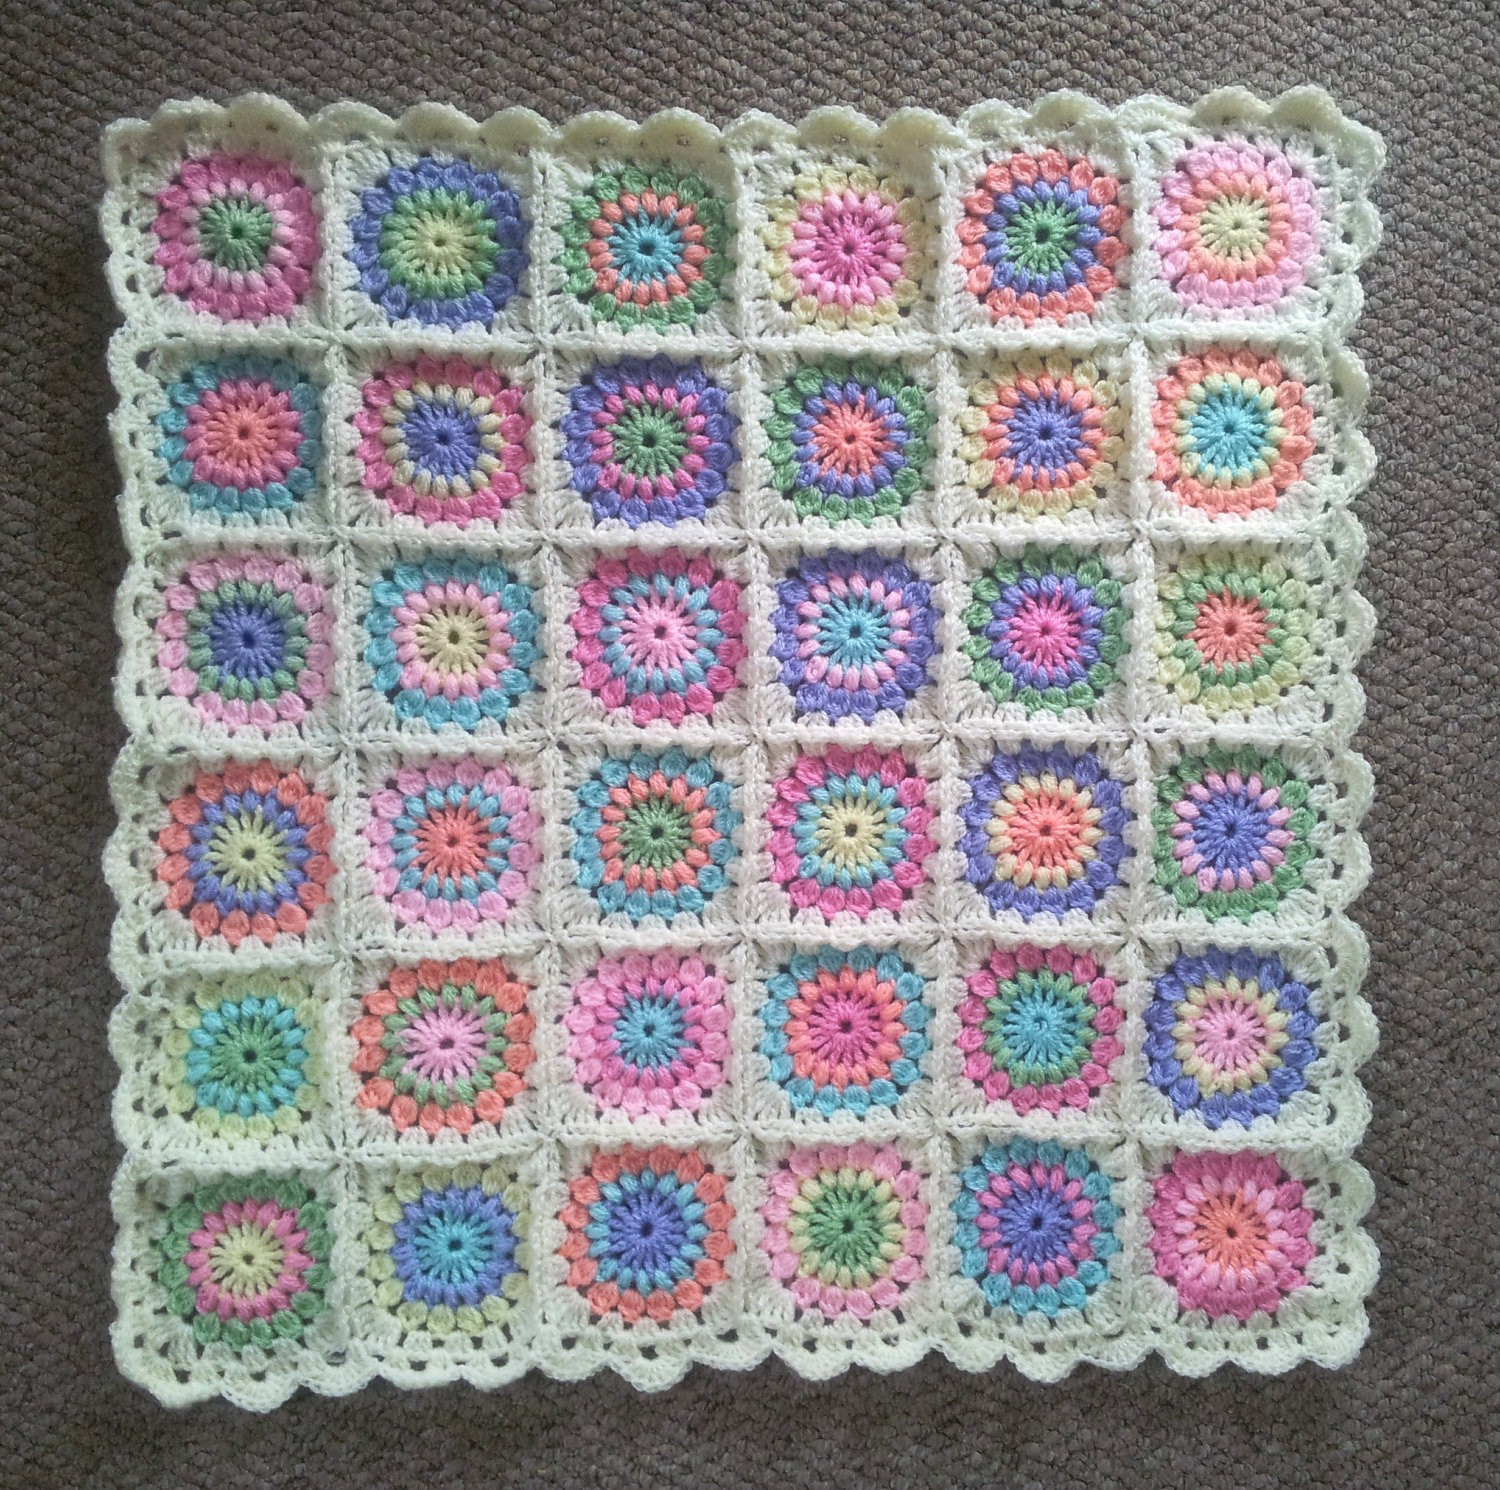 Luxury Free Crochet Patterns for Baby Blankets Easy Baby Blankets to Crochet Of Amazing 46 Images Baby Blankets to Crochet